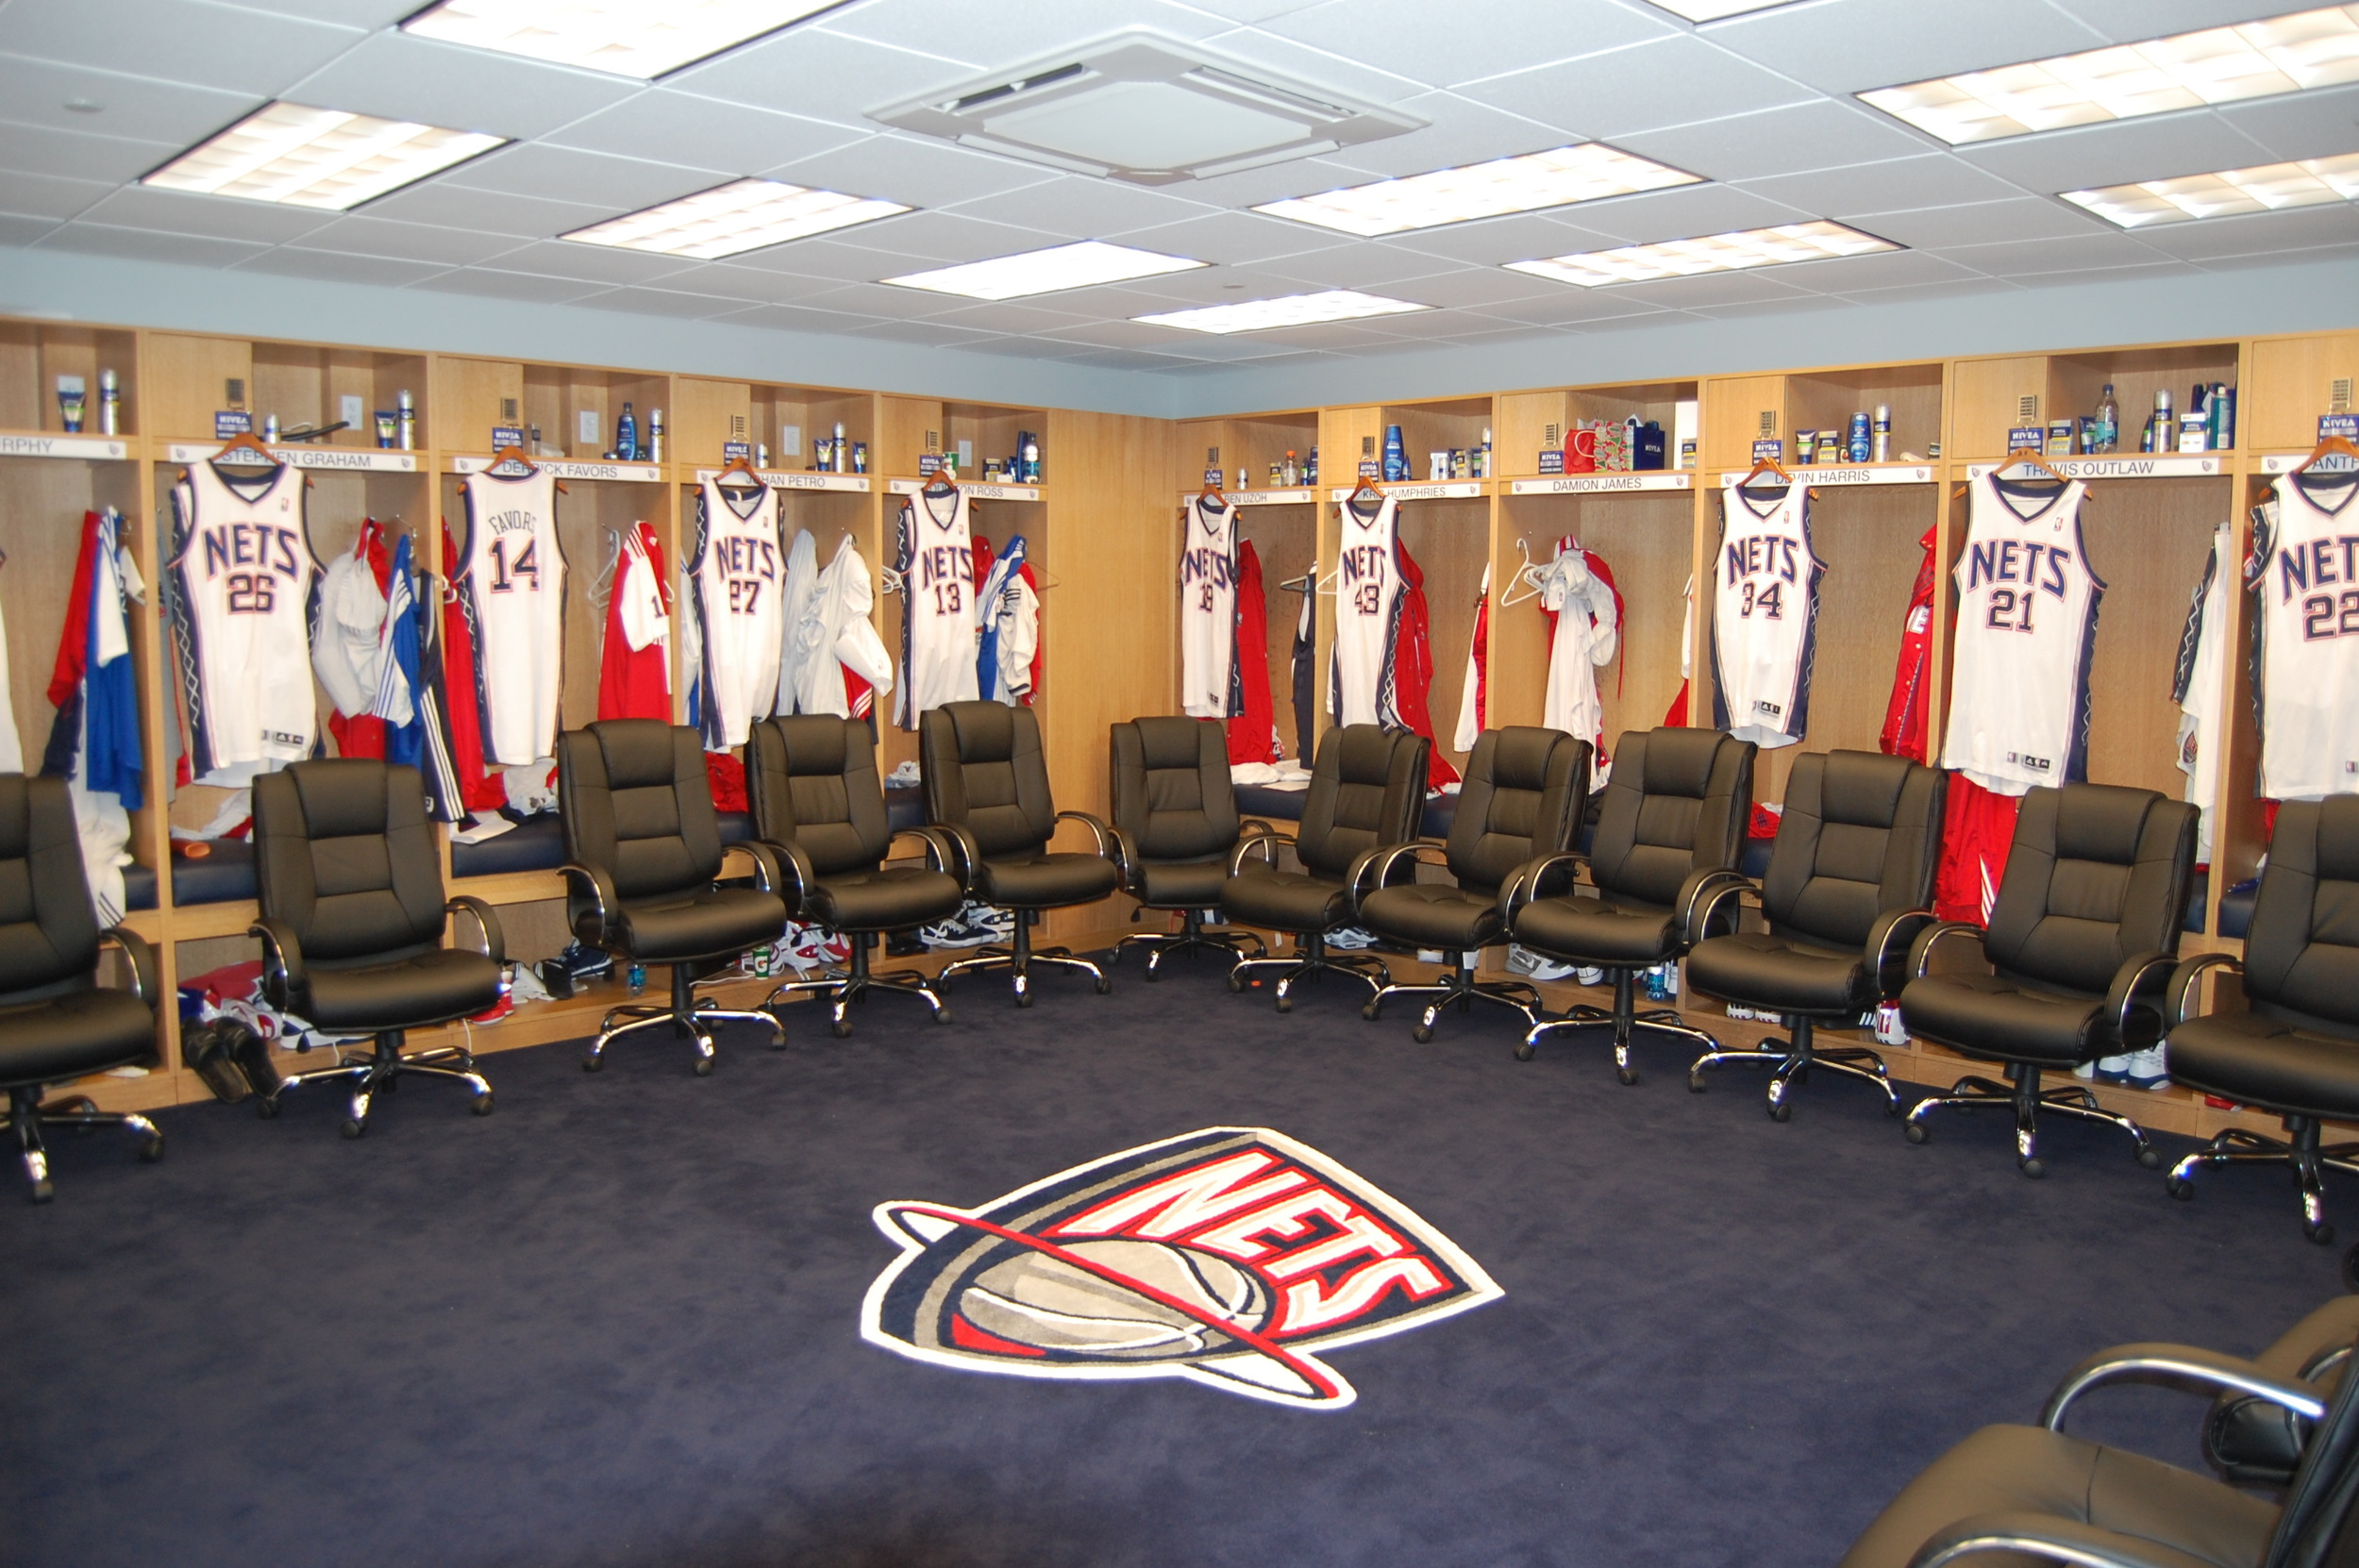 2c81f1d34da Phelps Construction Group — New Jersey Nets Locker and Training Rooms